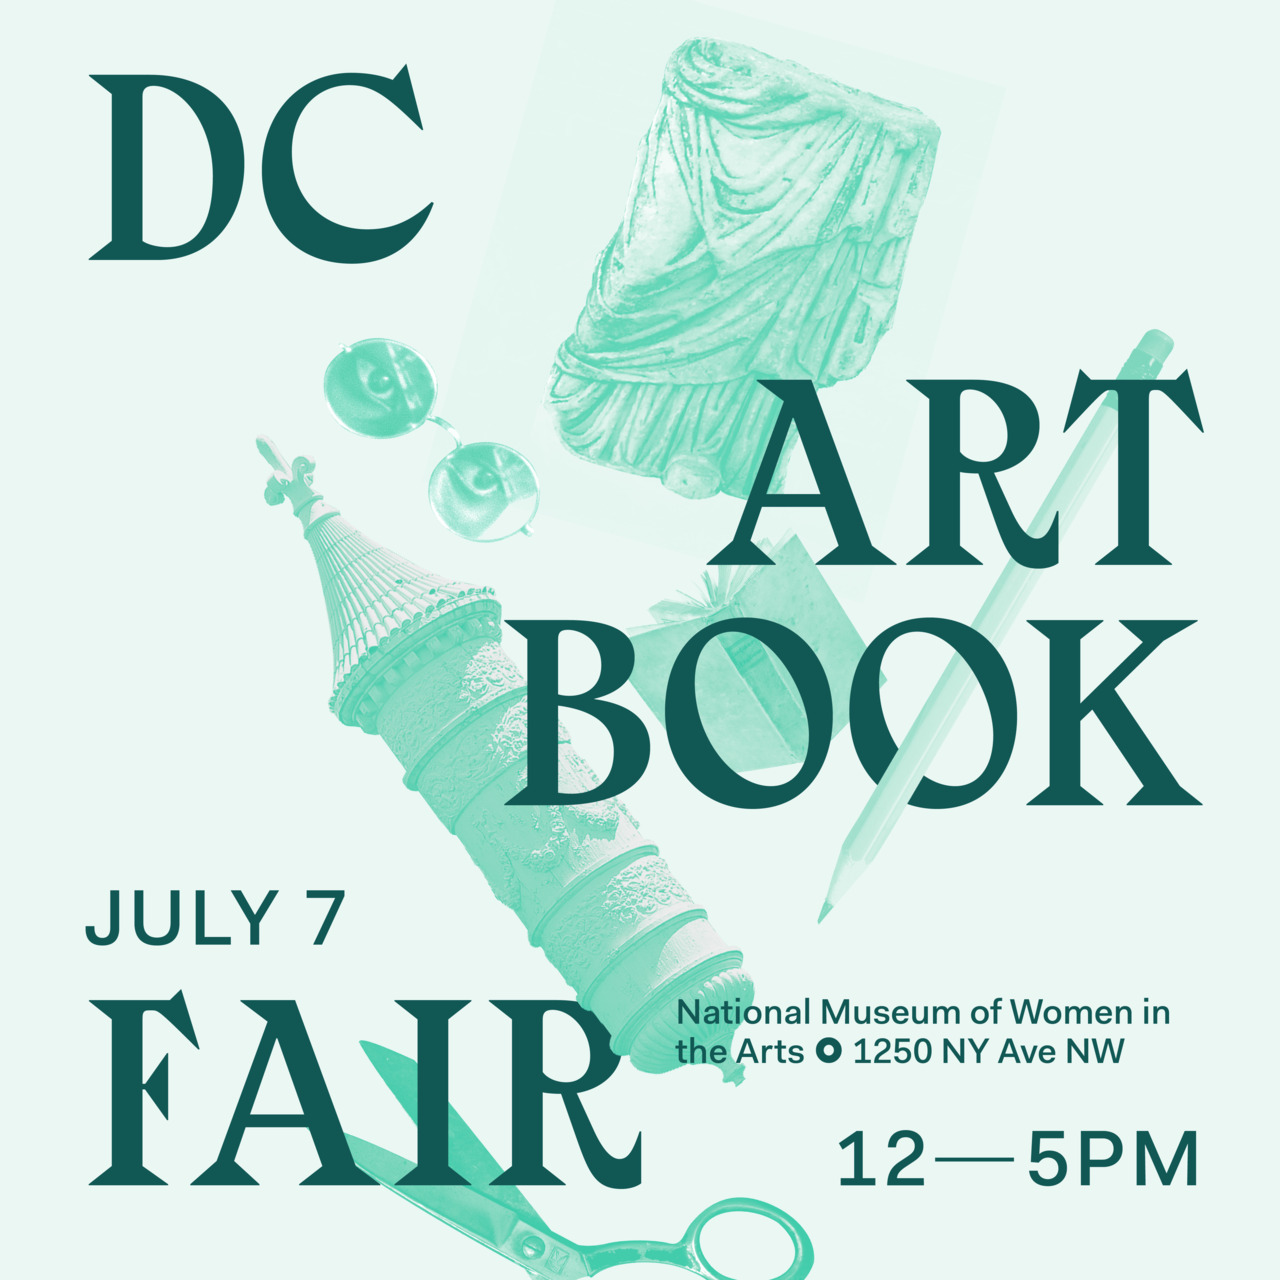 DC Art Book Fair  at the National Museum for Women in the Arts - Founder and Art Director